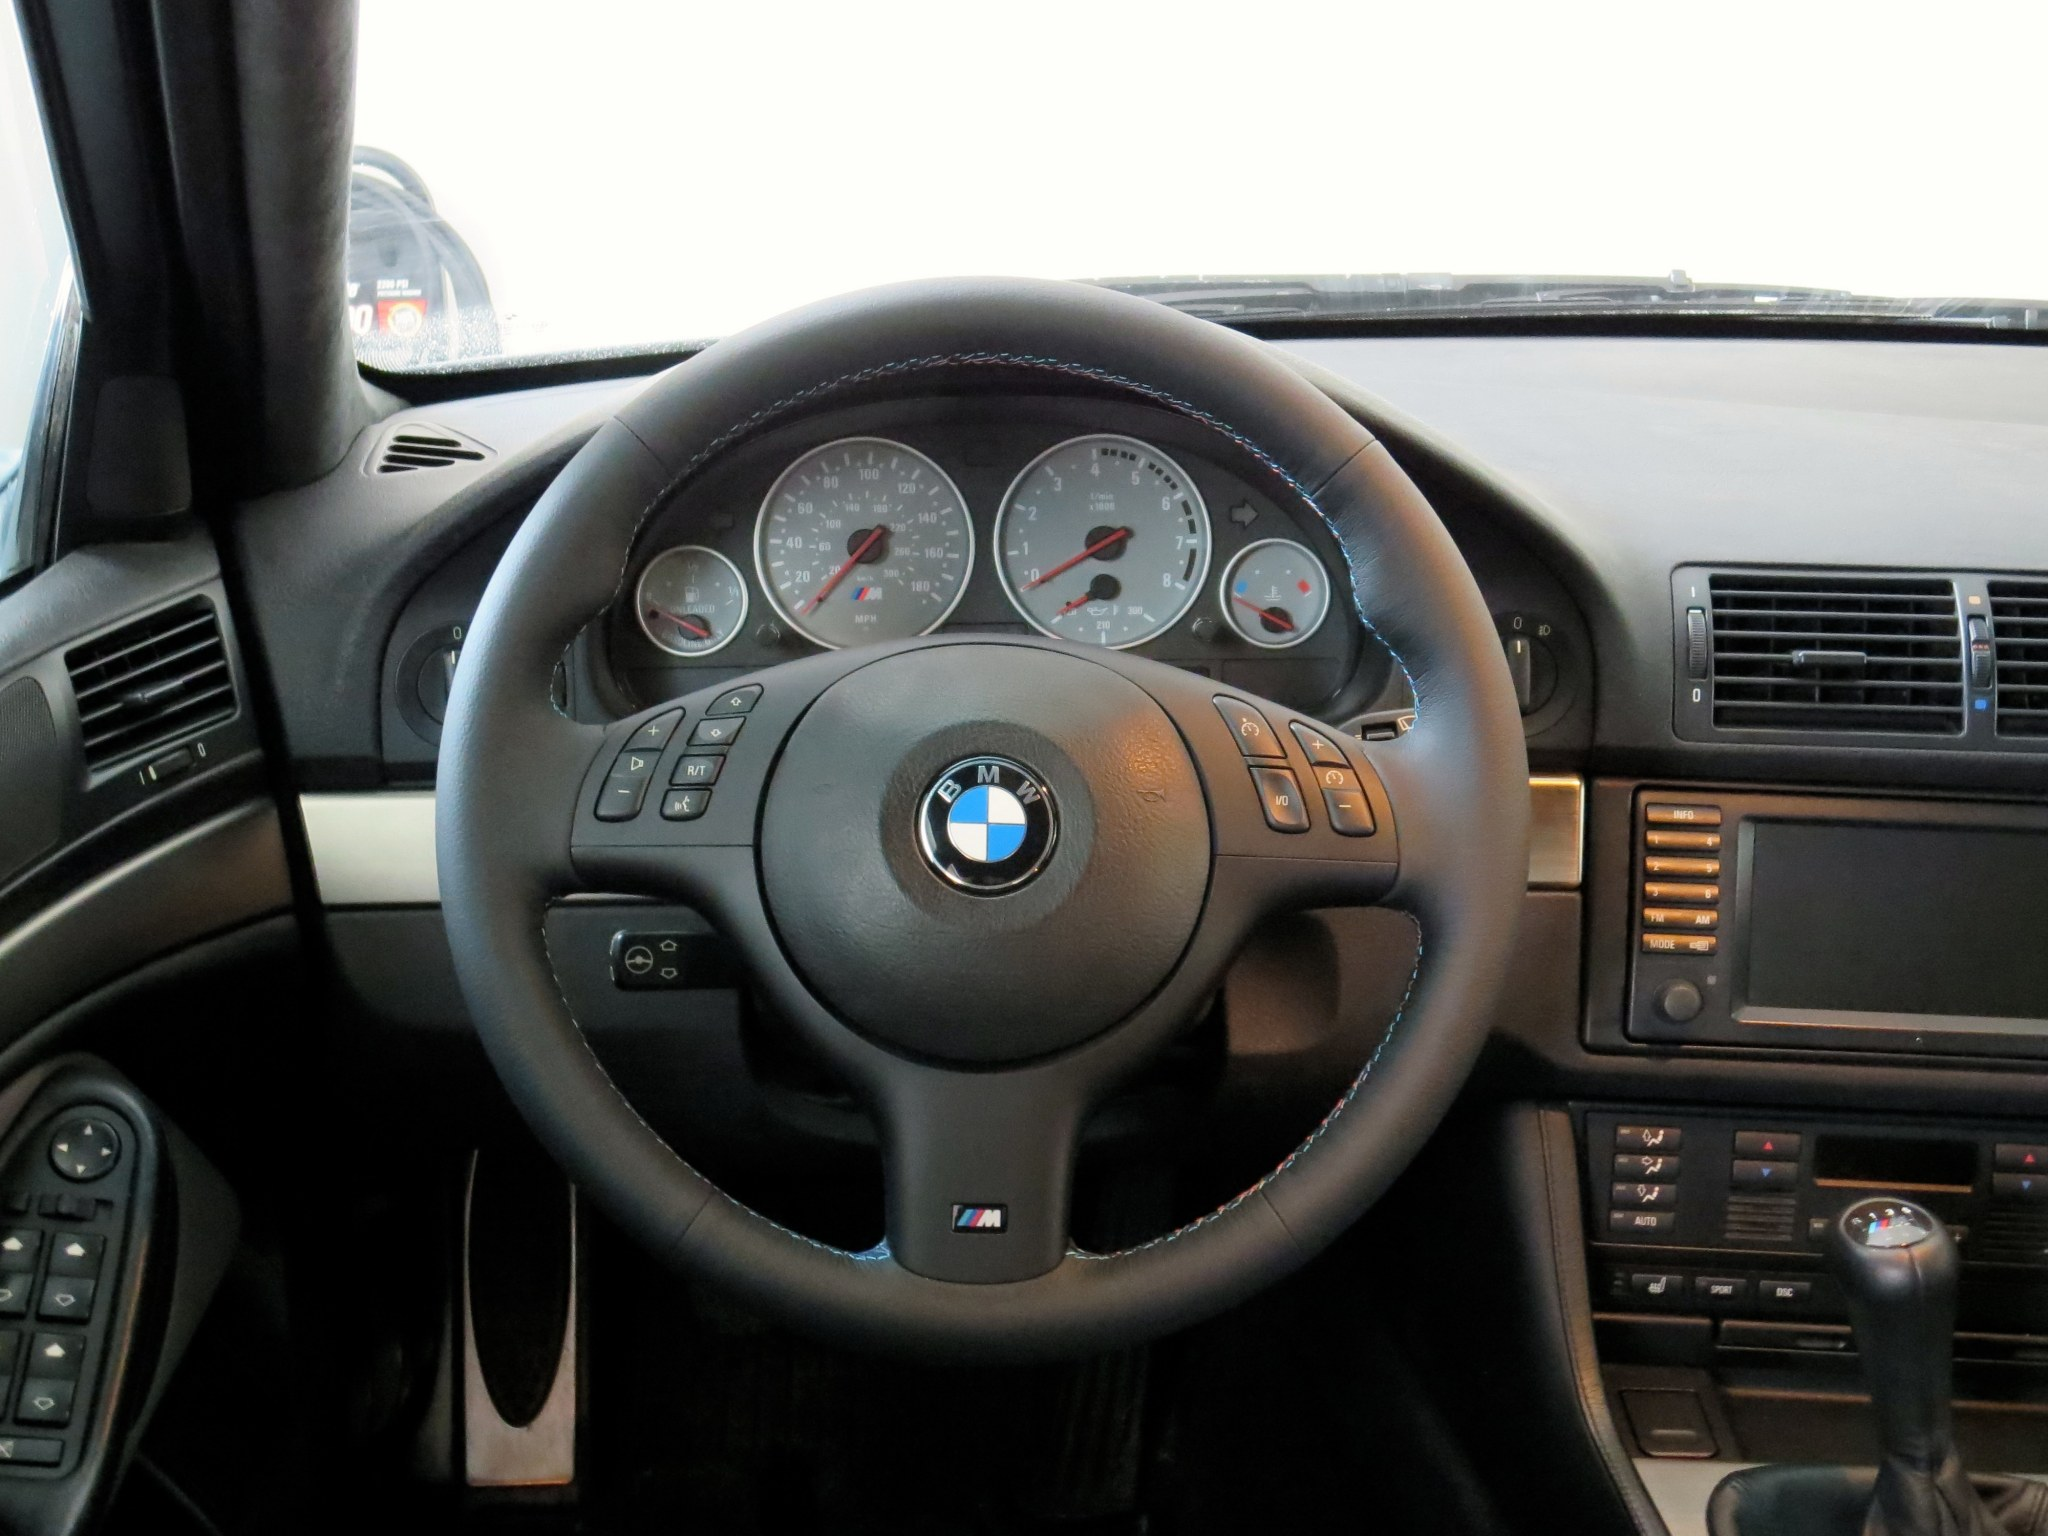 2000 Bmw M5 Facelift Steering Wheel Upgrade Bmw E39source